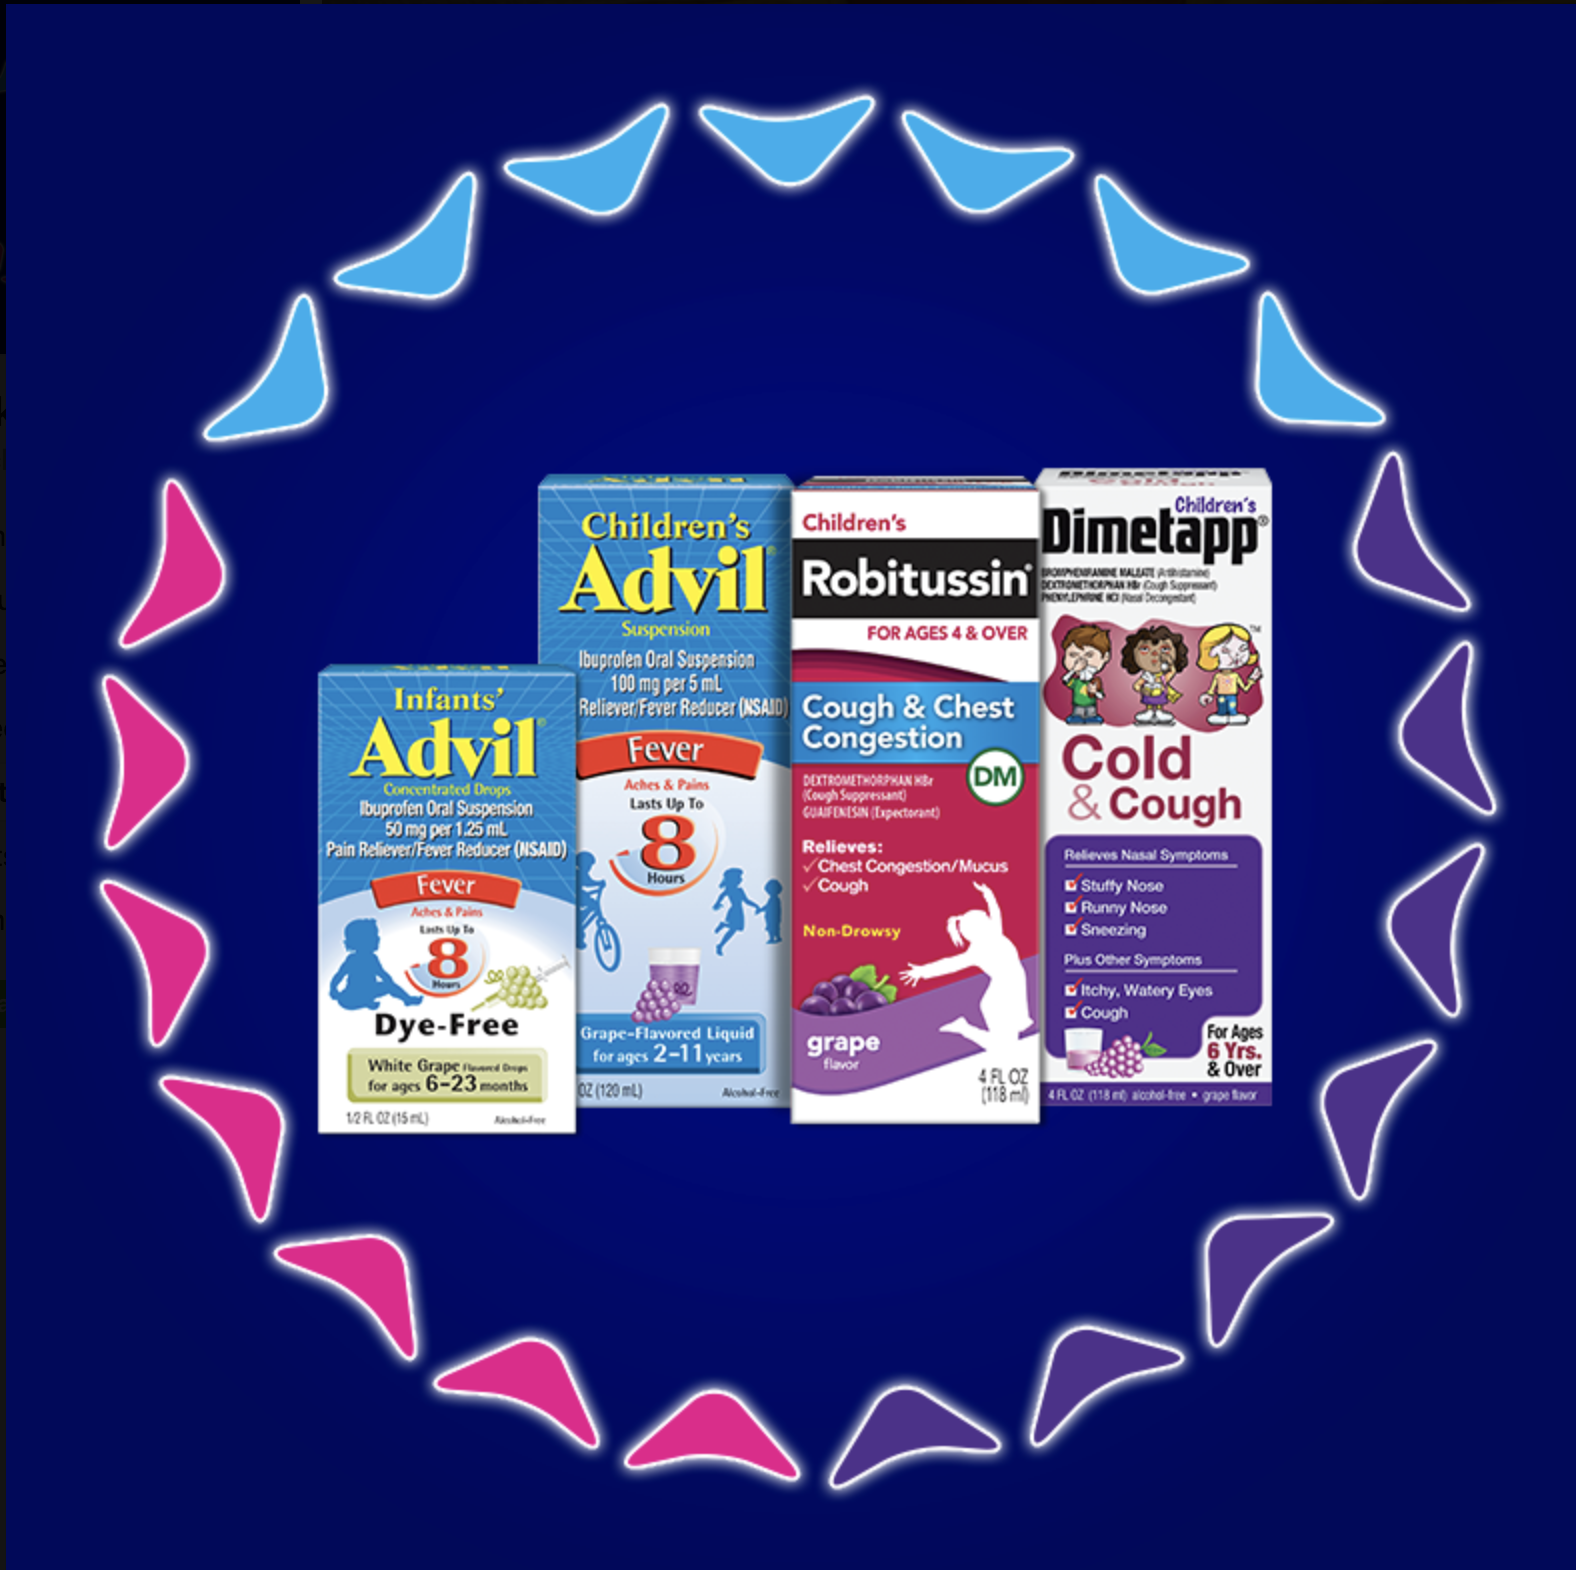 When sick gets real, the pediatric brands of Pfizer Consumer Healthcare are there with three solutions – Children's Advil®, Children's Robitussin® and Children's Dimetapp® – to tackle the ickiest of symptoms.